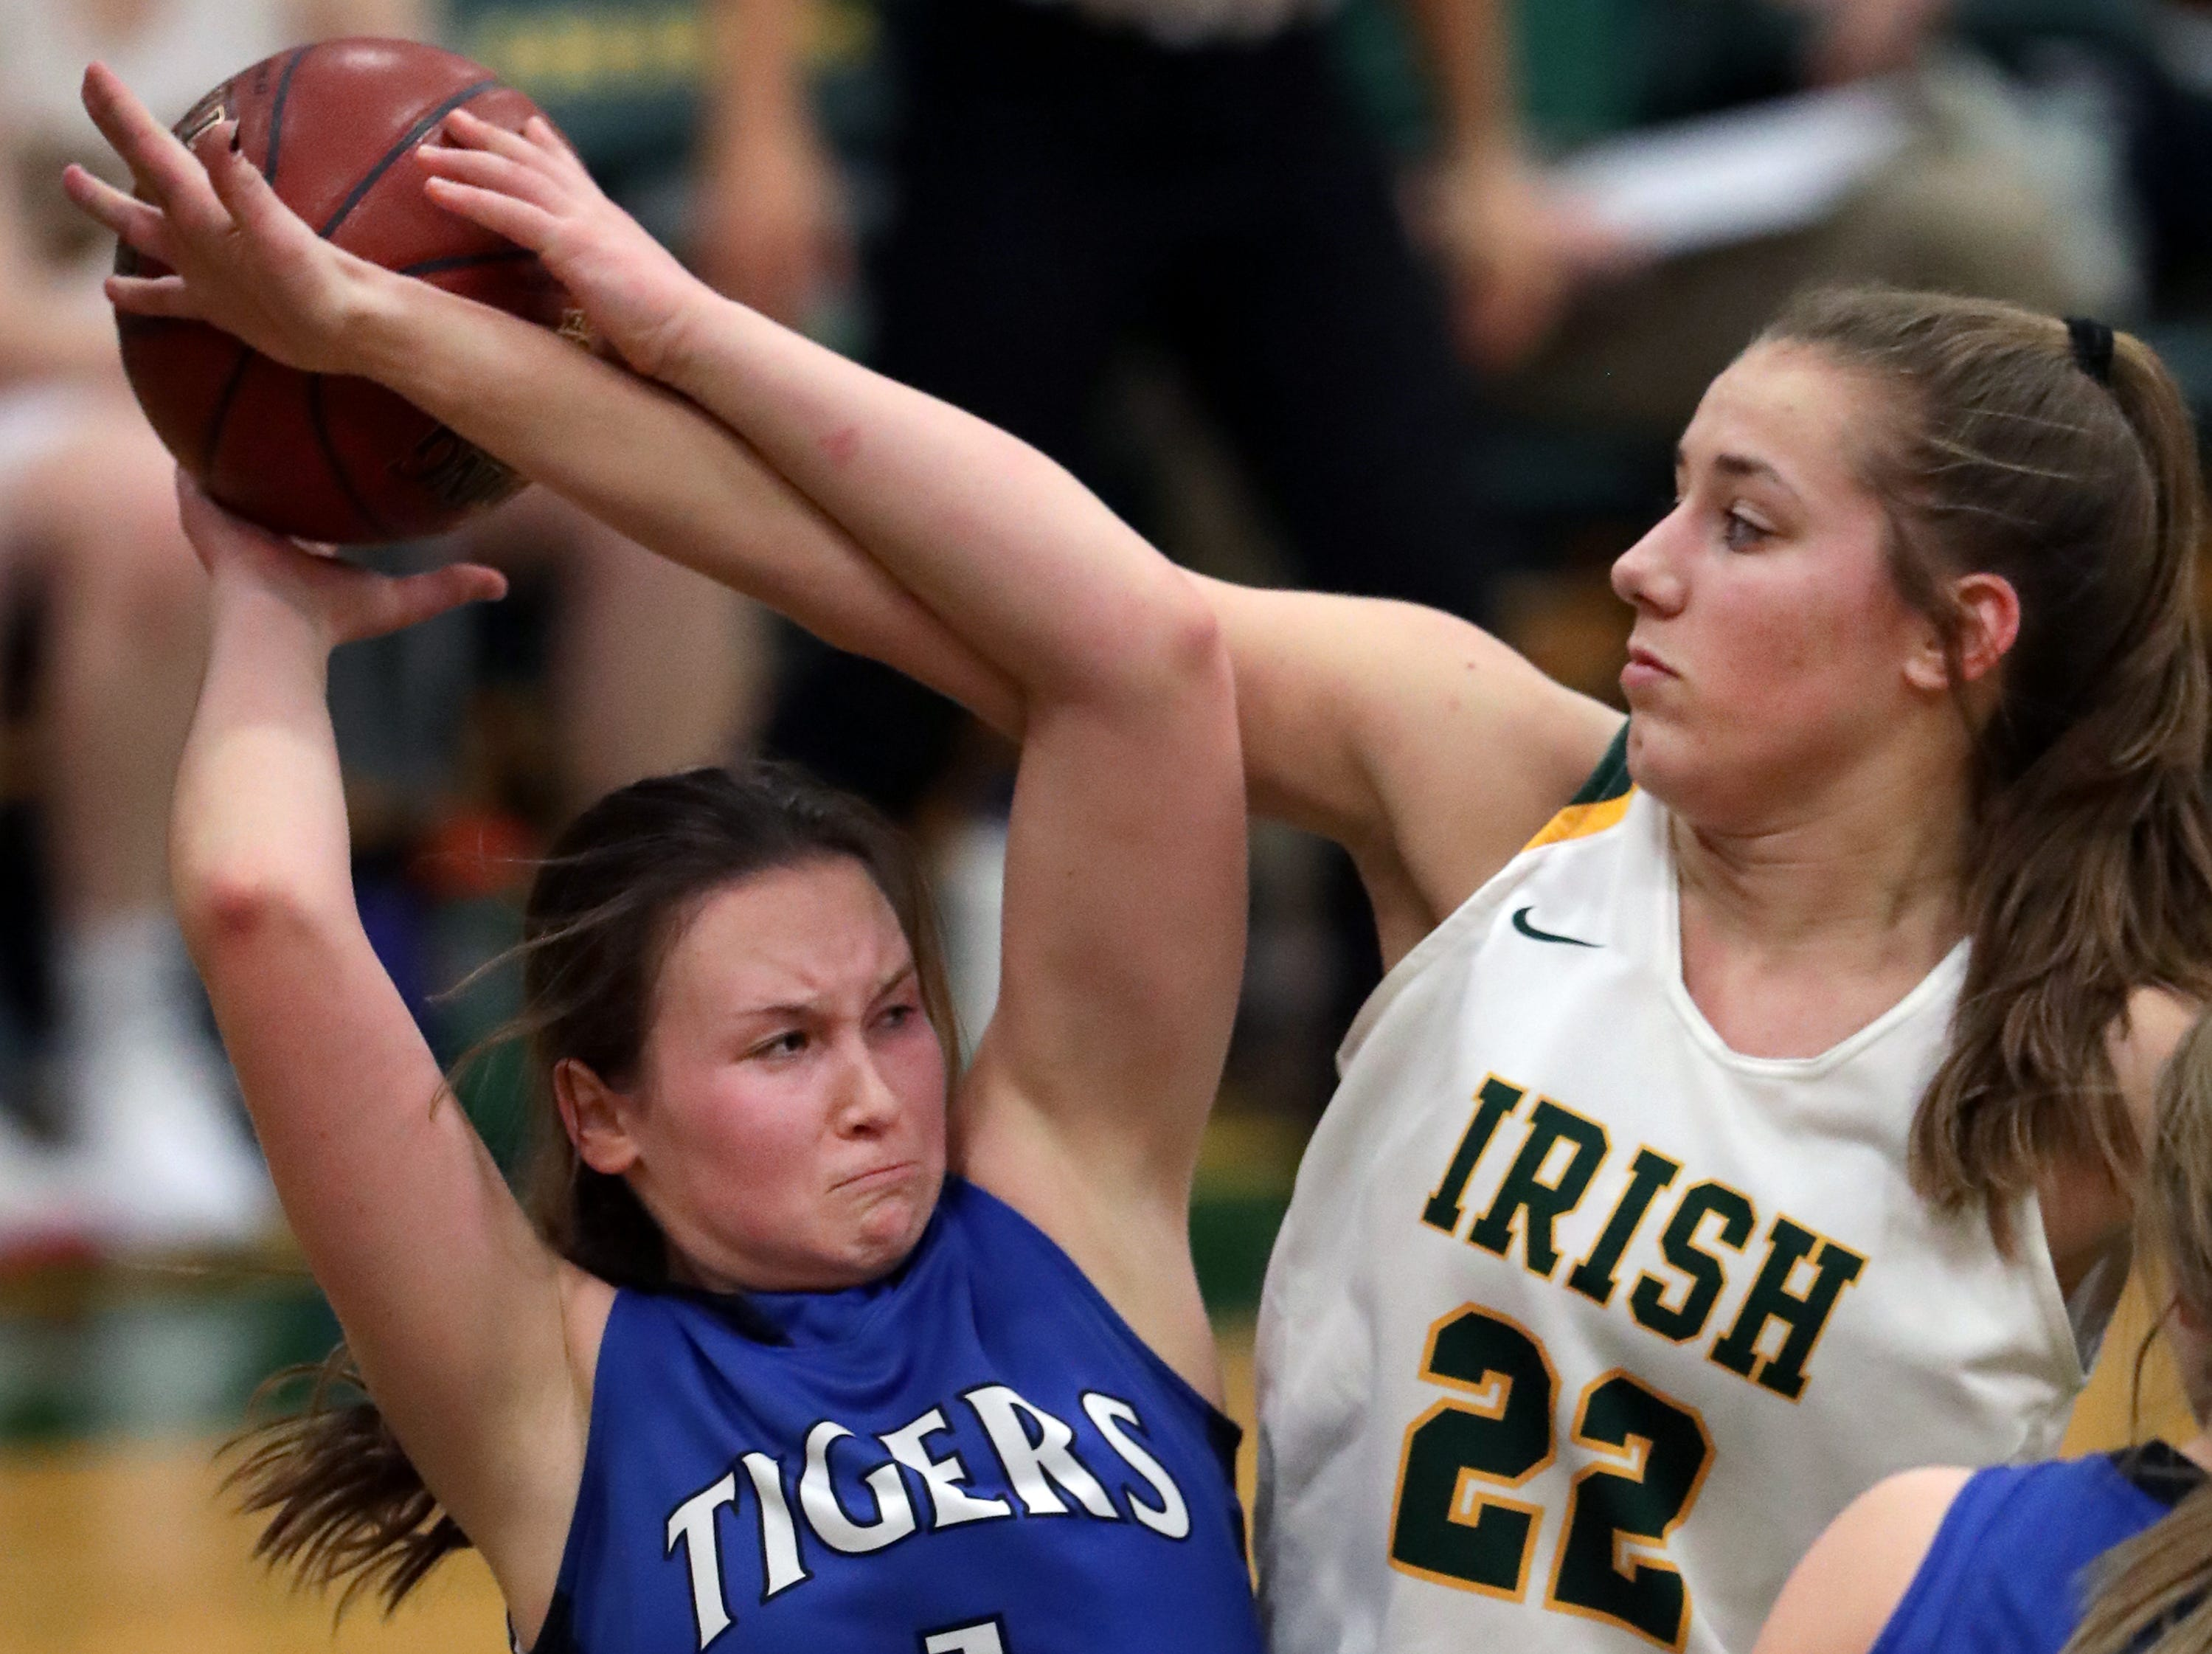 Freedom High School's #22 Taylor Haase against Wrightstown High School's #1 Bridget Froehlke during their North Eastern Conference girls basketball game on Thursday, January 3, 2019, in Freedom, Wis. Freedom defeated Wrightstown 54 to 34.Wm. Glasheen/USA TODAY NETWORK-Wisconsin.